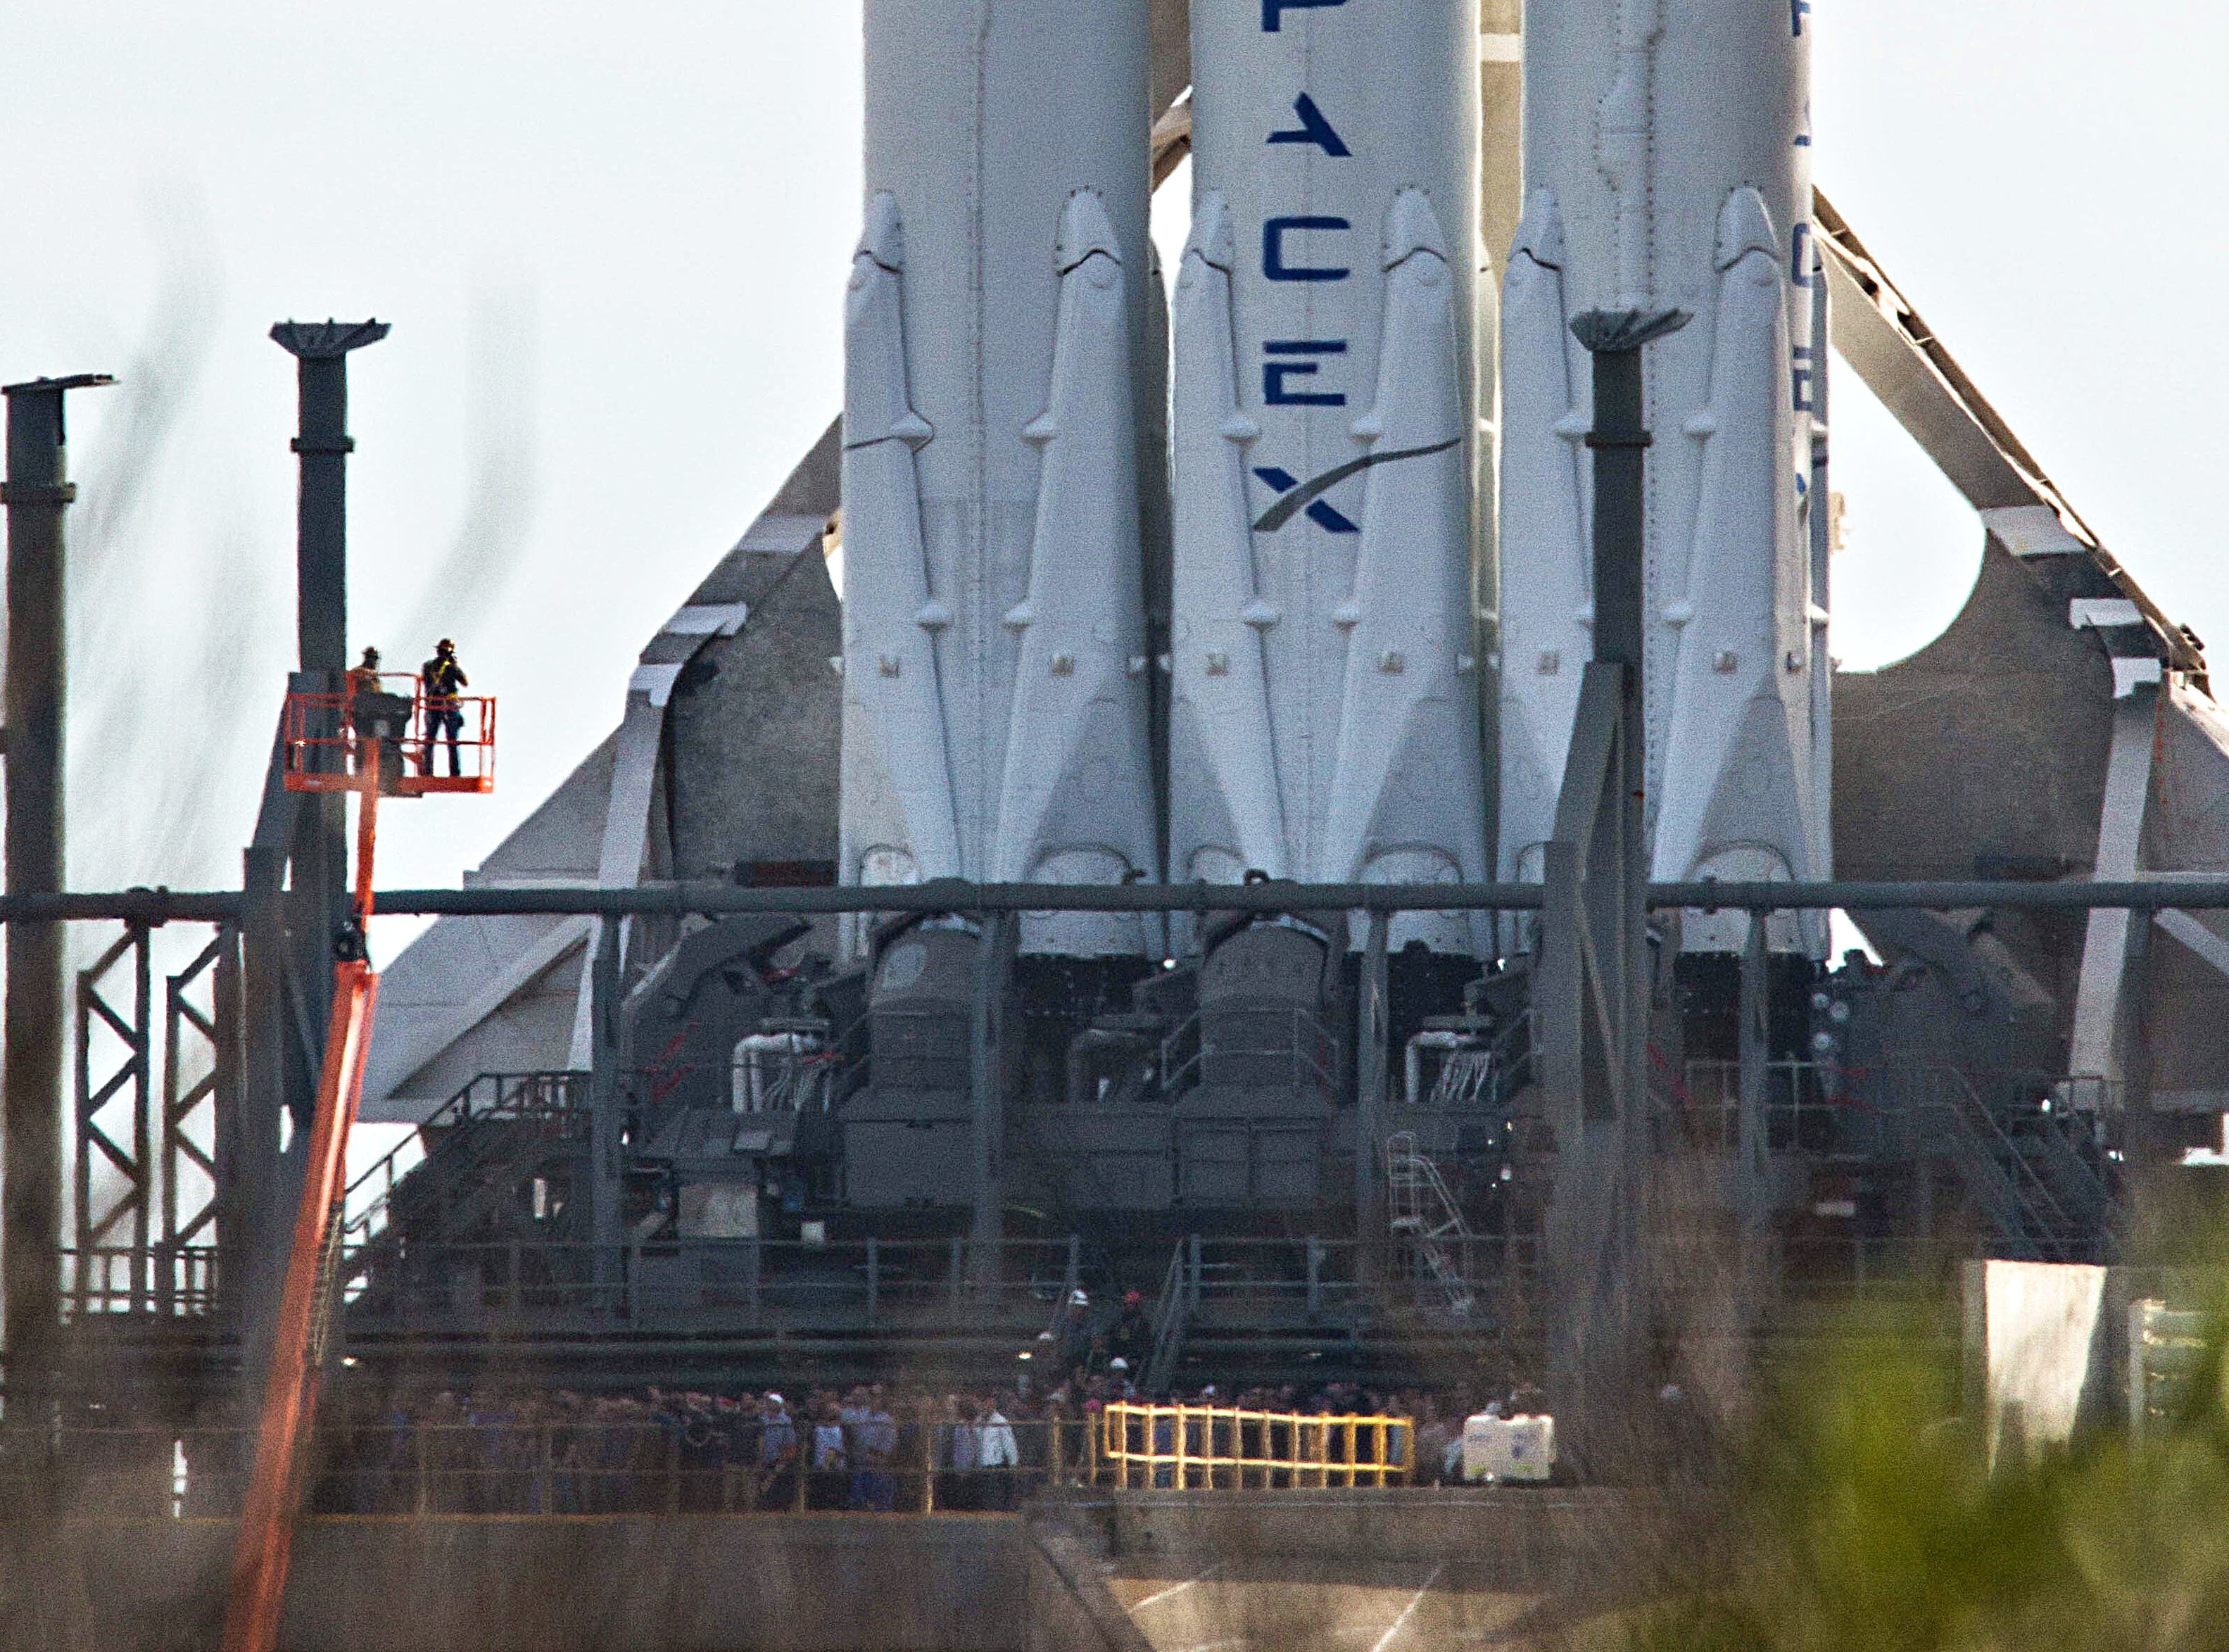 spacex-falcon-heavy-booster-engines